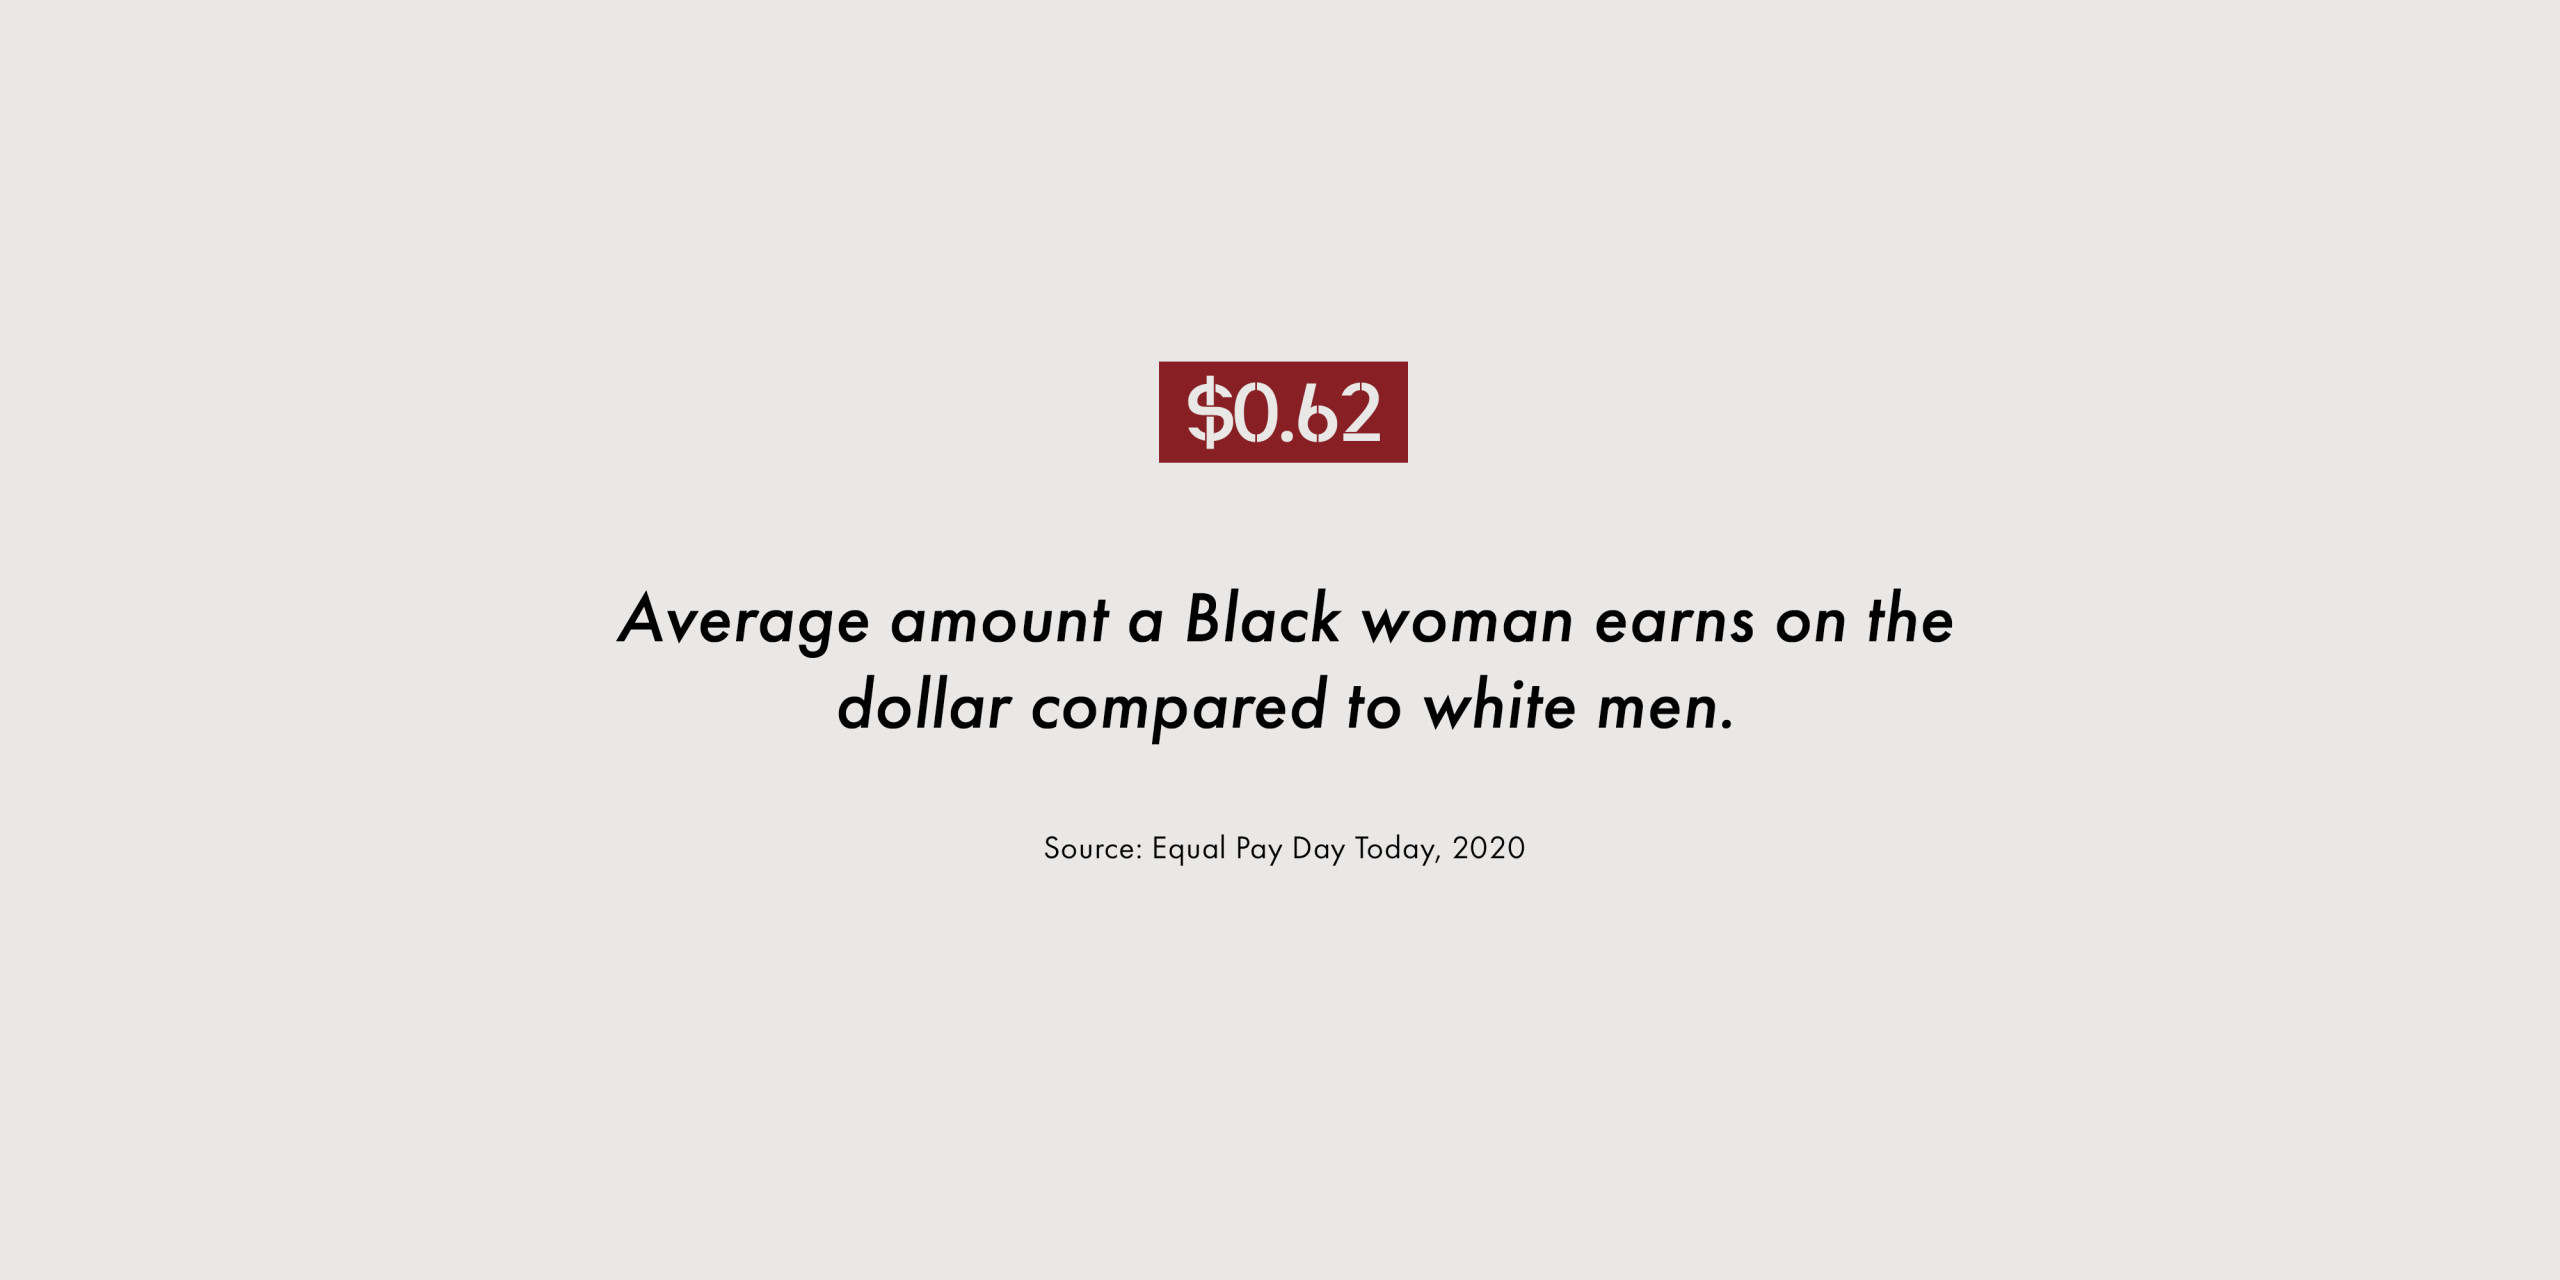 62 cents. Average amount a Black woman earns on the dollar compared to white men.